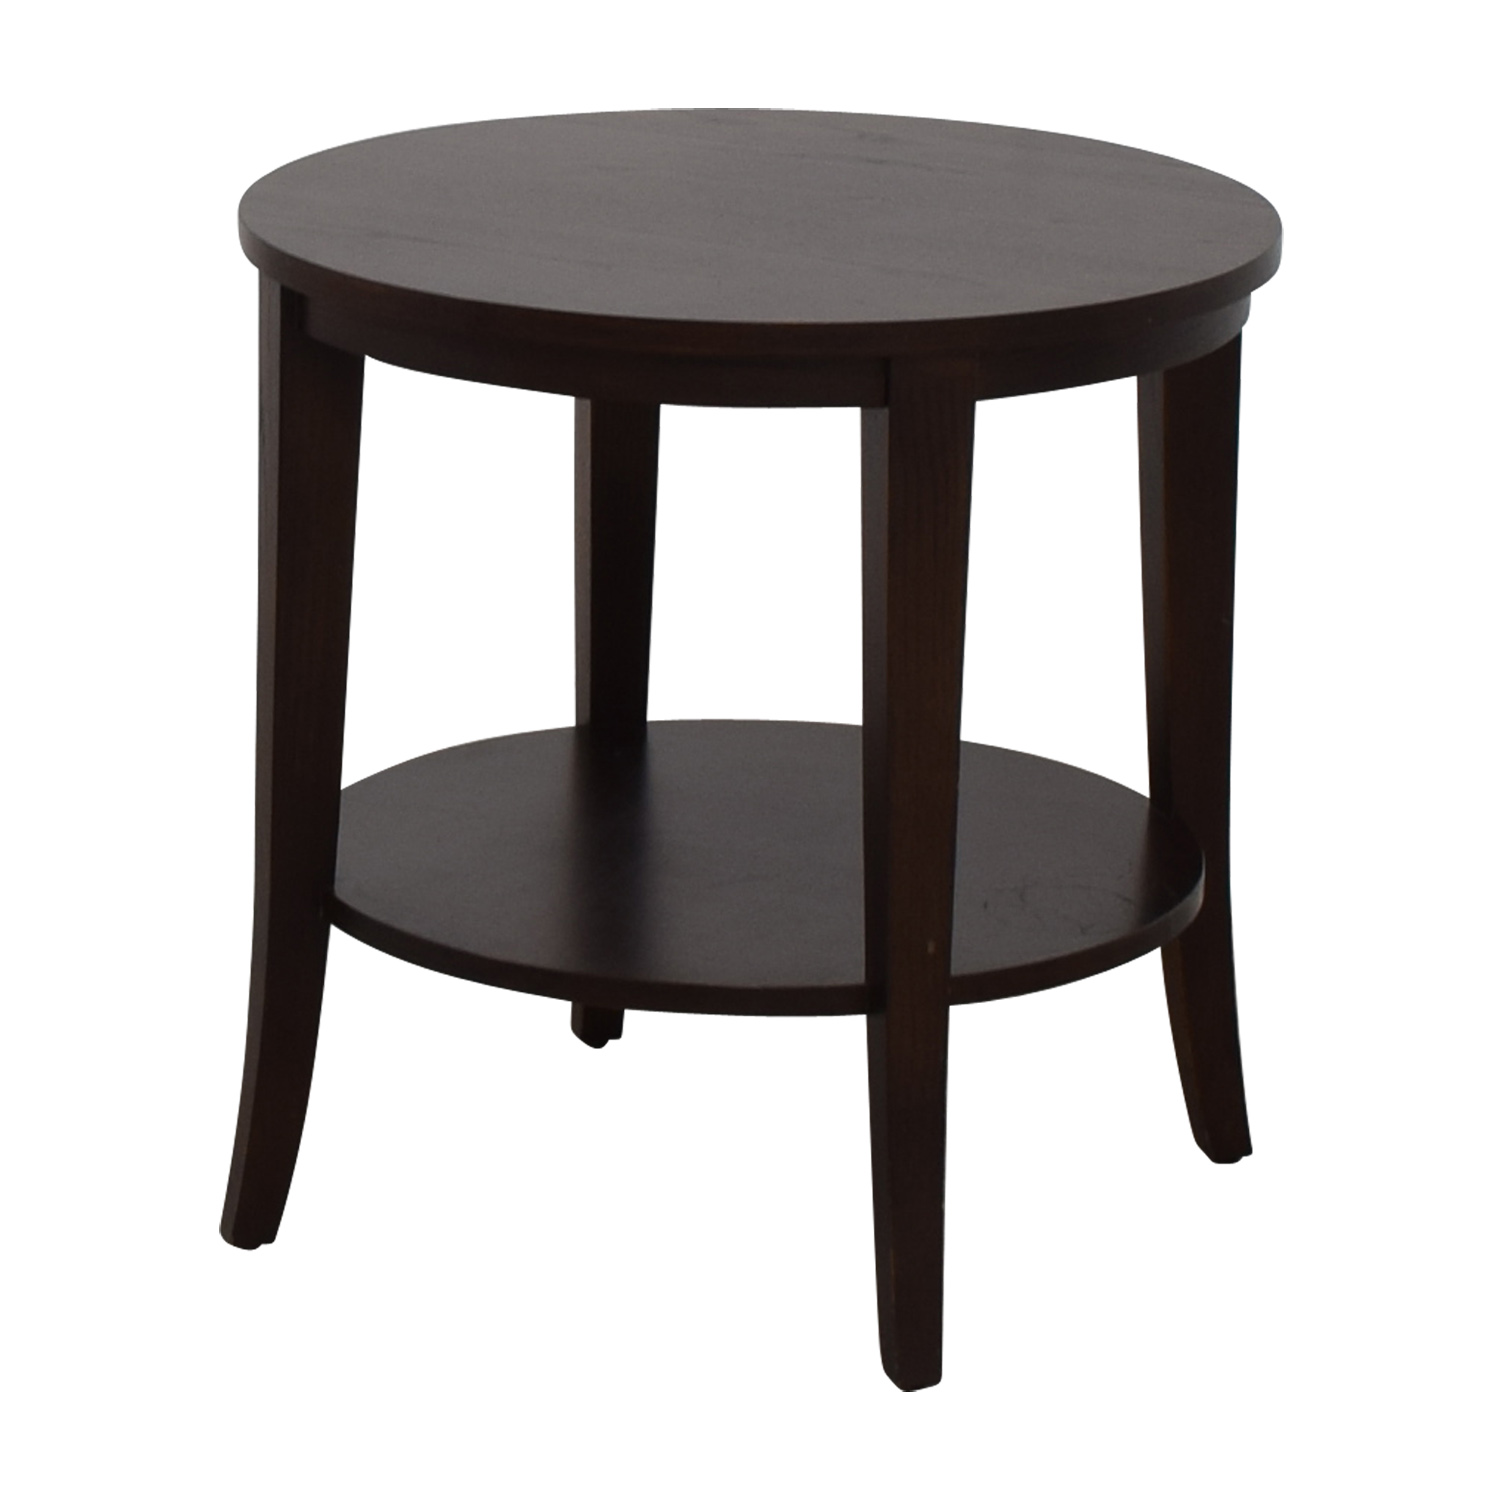 off ethan allen round wood accent table tables second hand oak antique drop leaf kitchen tablecloth steel and side small bedside lamps hammered metal coffee nate berkus best patio